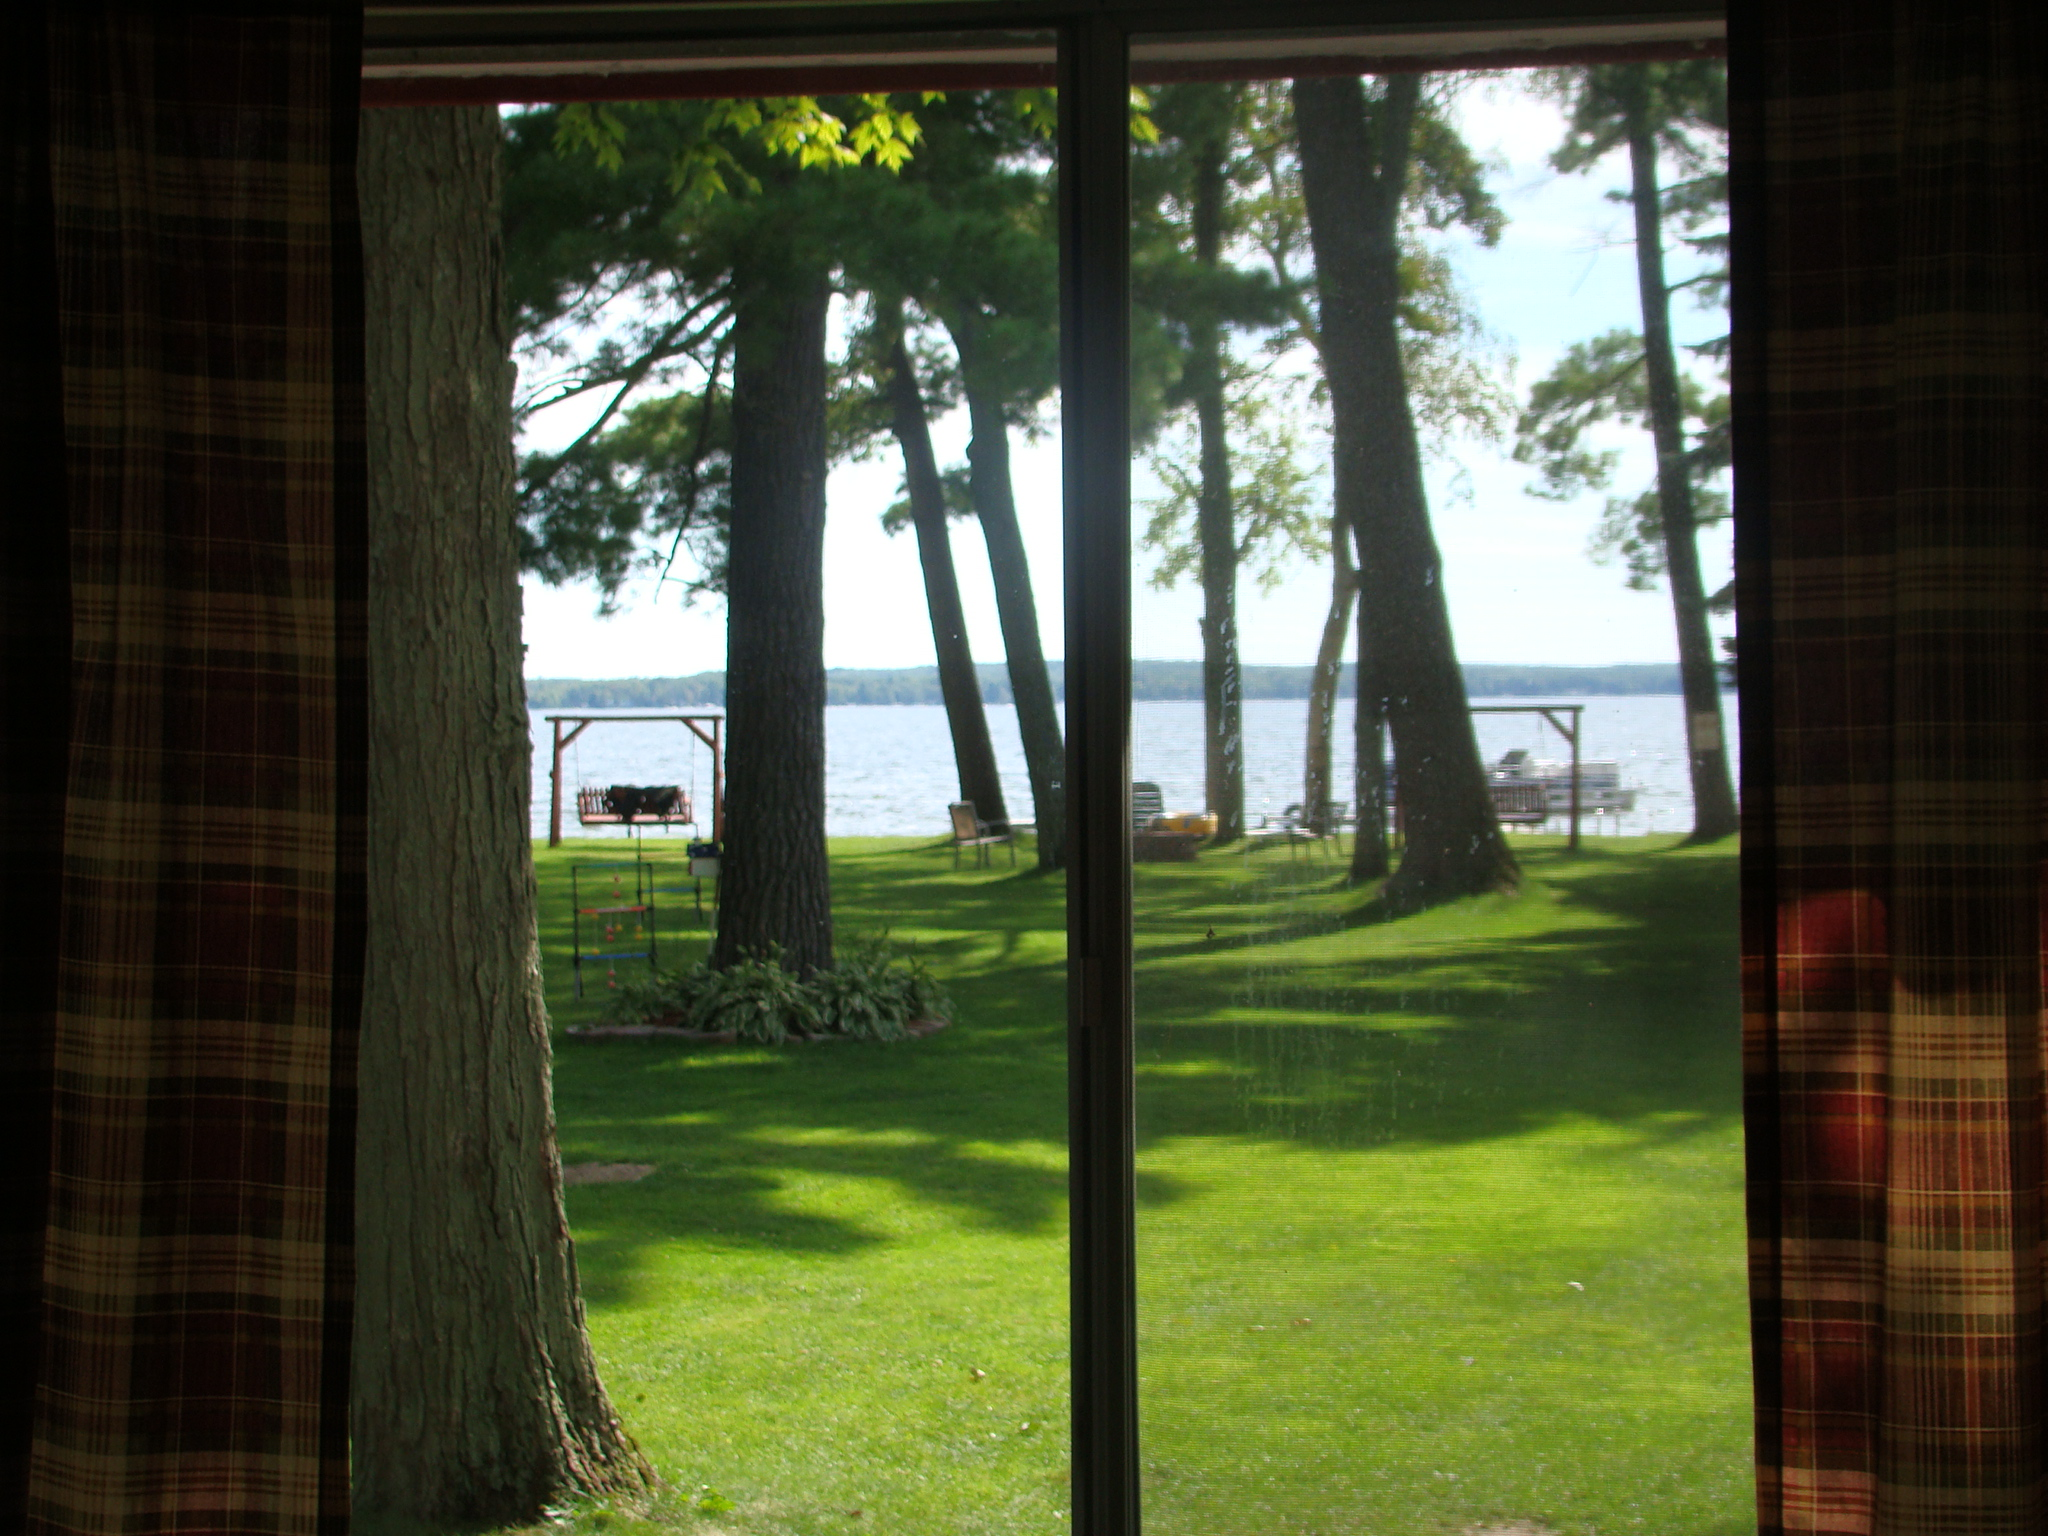 cabin rentals ideas michigan markhams best in mi reviews states marina houghton united pictures lake cabins of travel